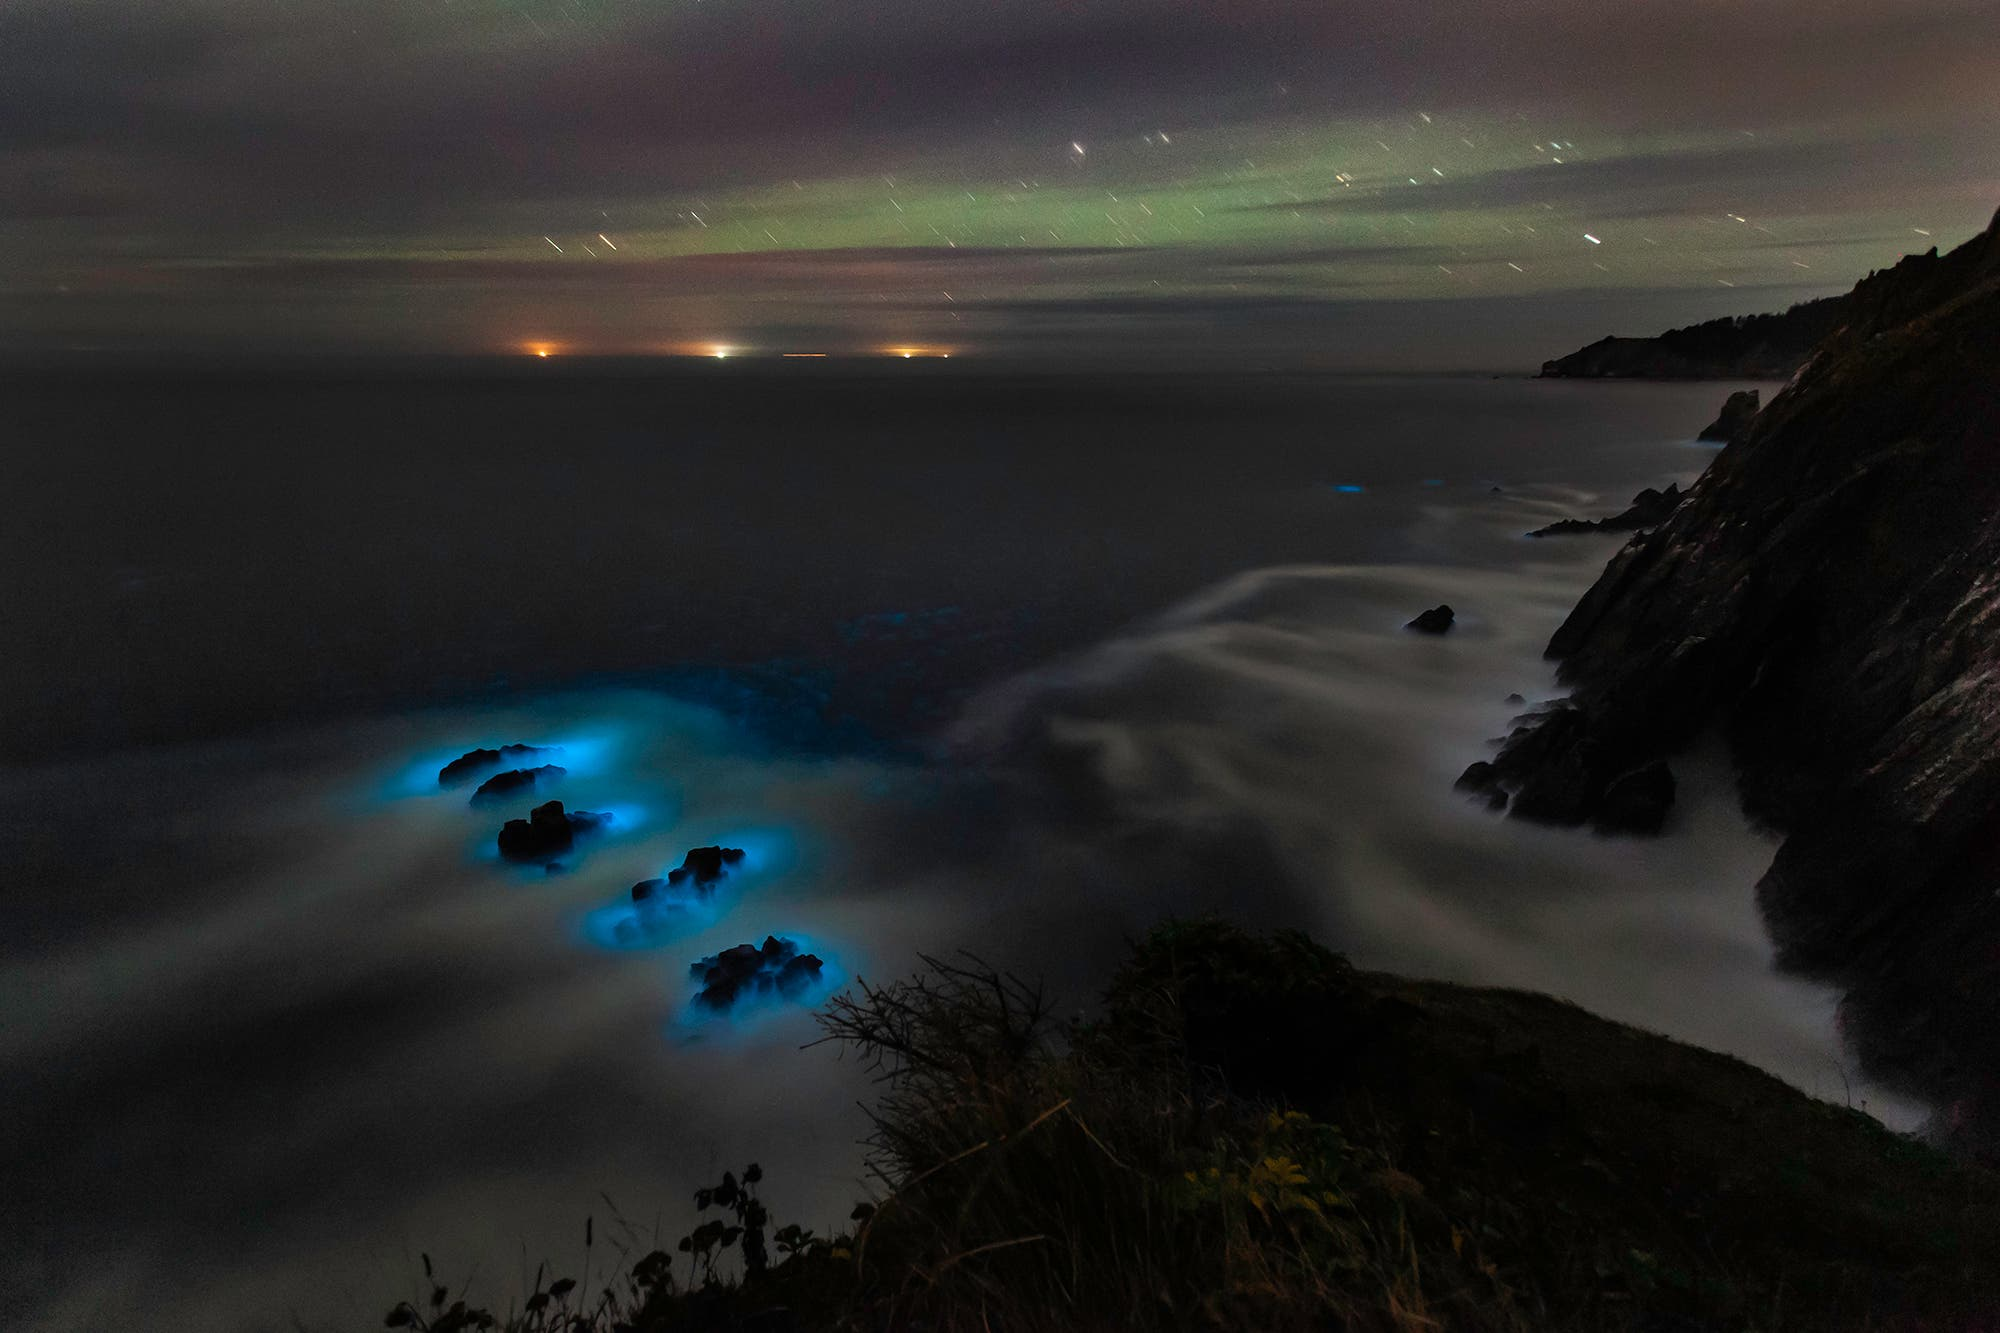 Photographer Zeb Andrews Caught a Beautiful, Rare Moment in Nature